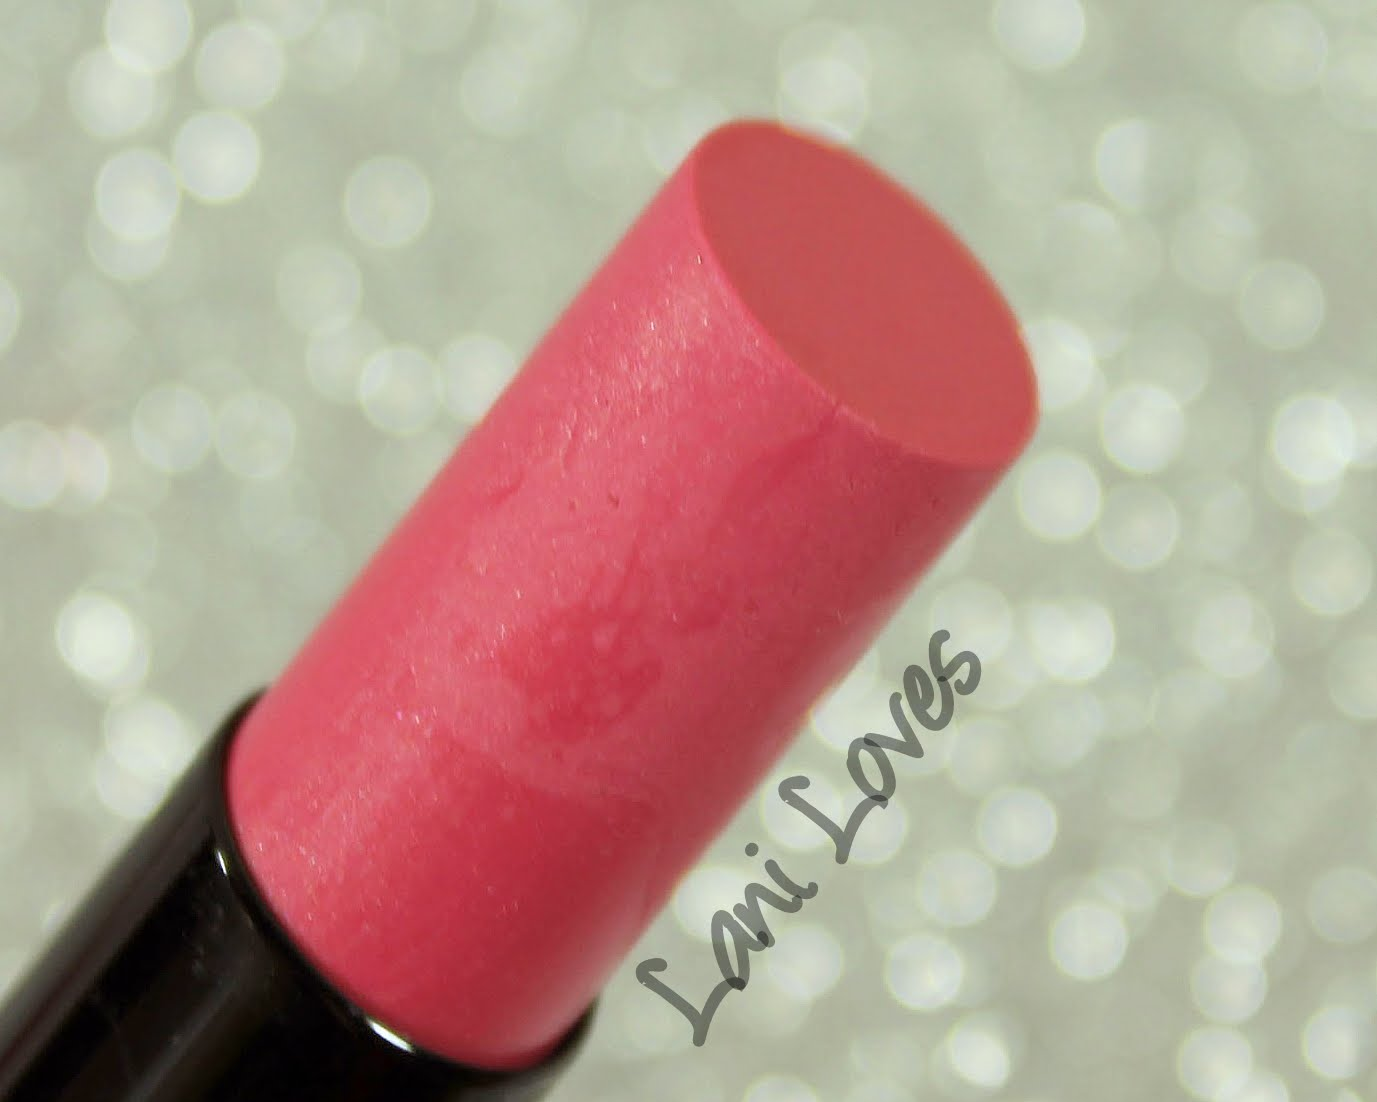 ZA Vibrant Moist Lipstick - RS371s swatches & review